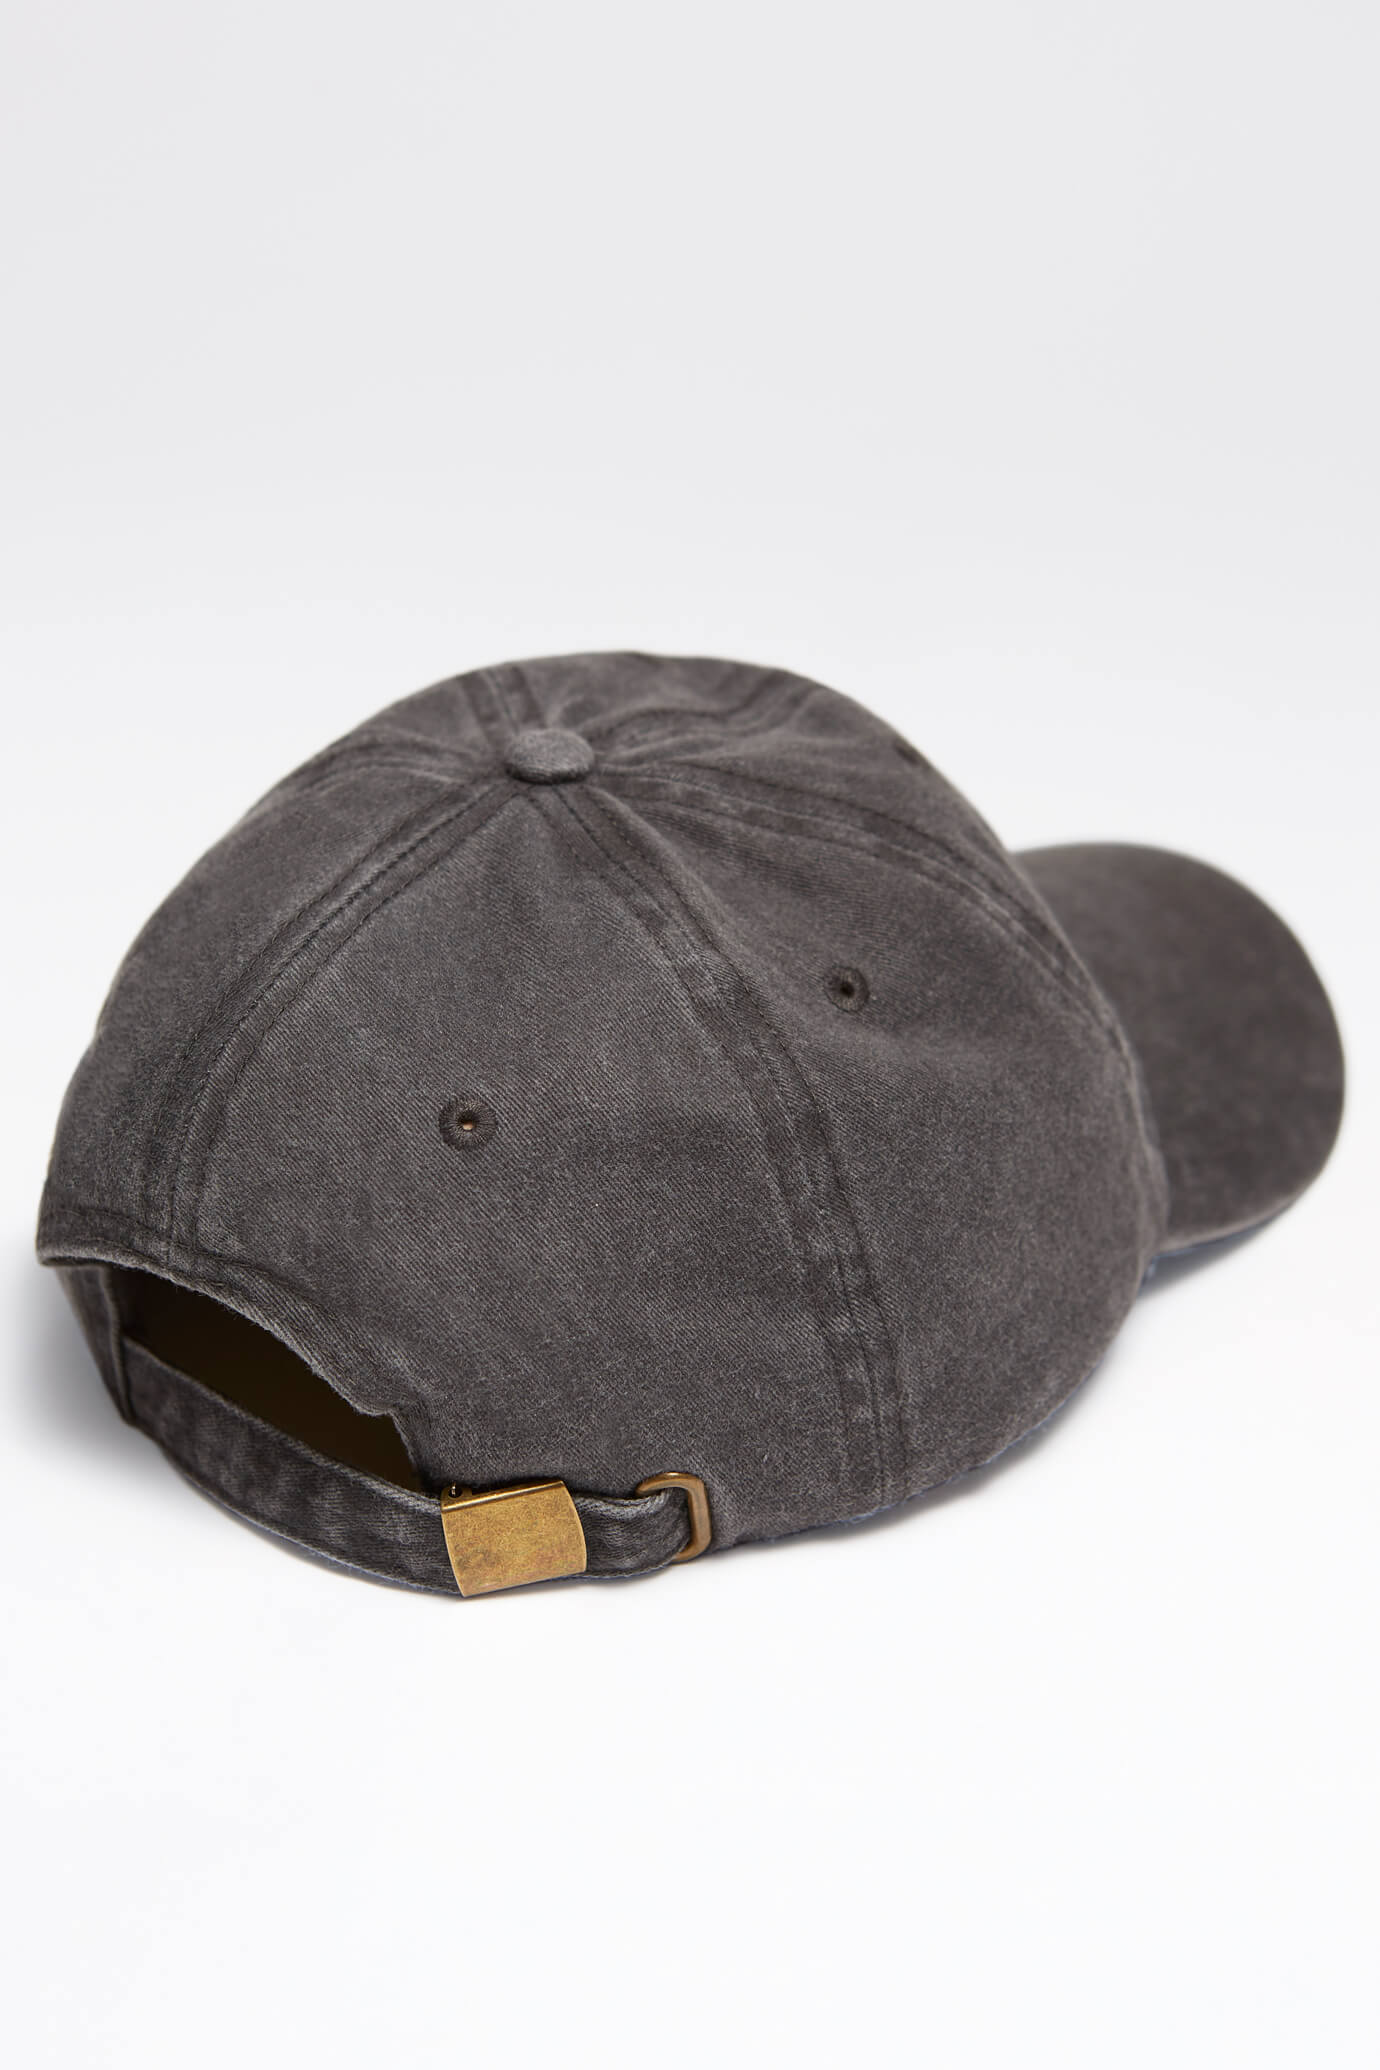 taproot pictures hat in stone gray back rooty